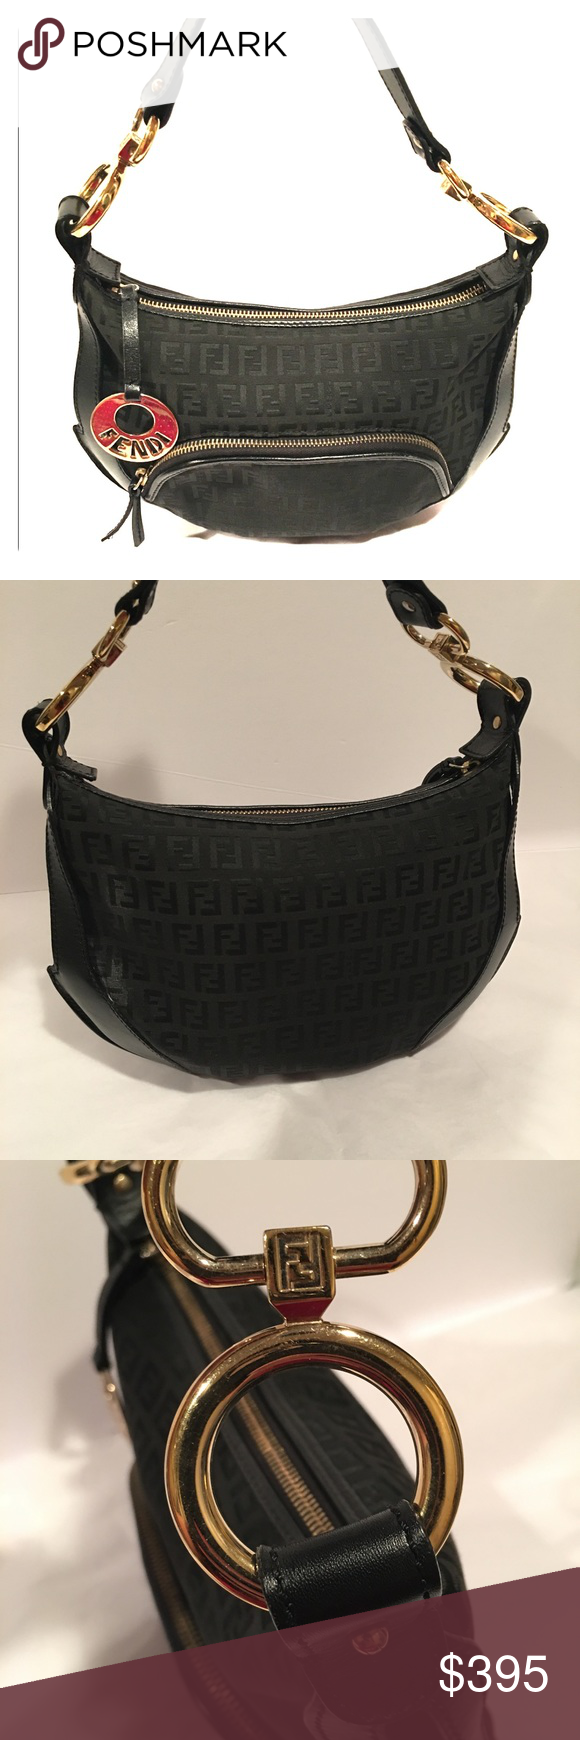 ceabffd7f2f5 Fendi Zucca Canvas   Leather Monogram Hobo -Small  Crafted of black FF Zucca  monogram canvas with black leather trim. Preowned